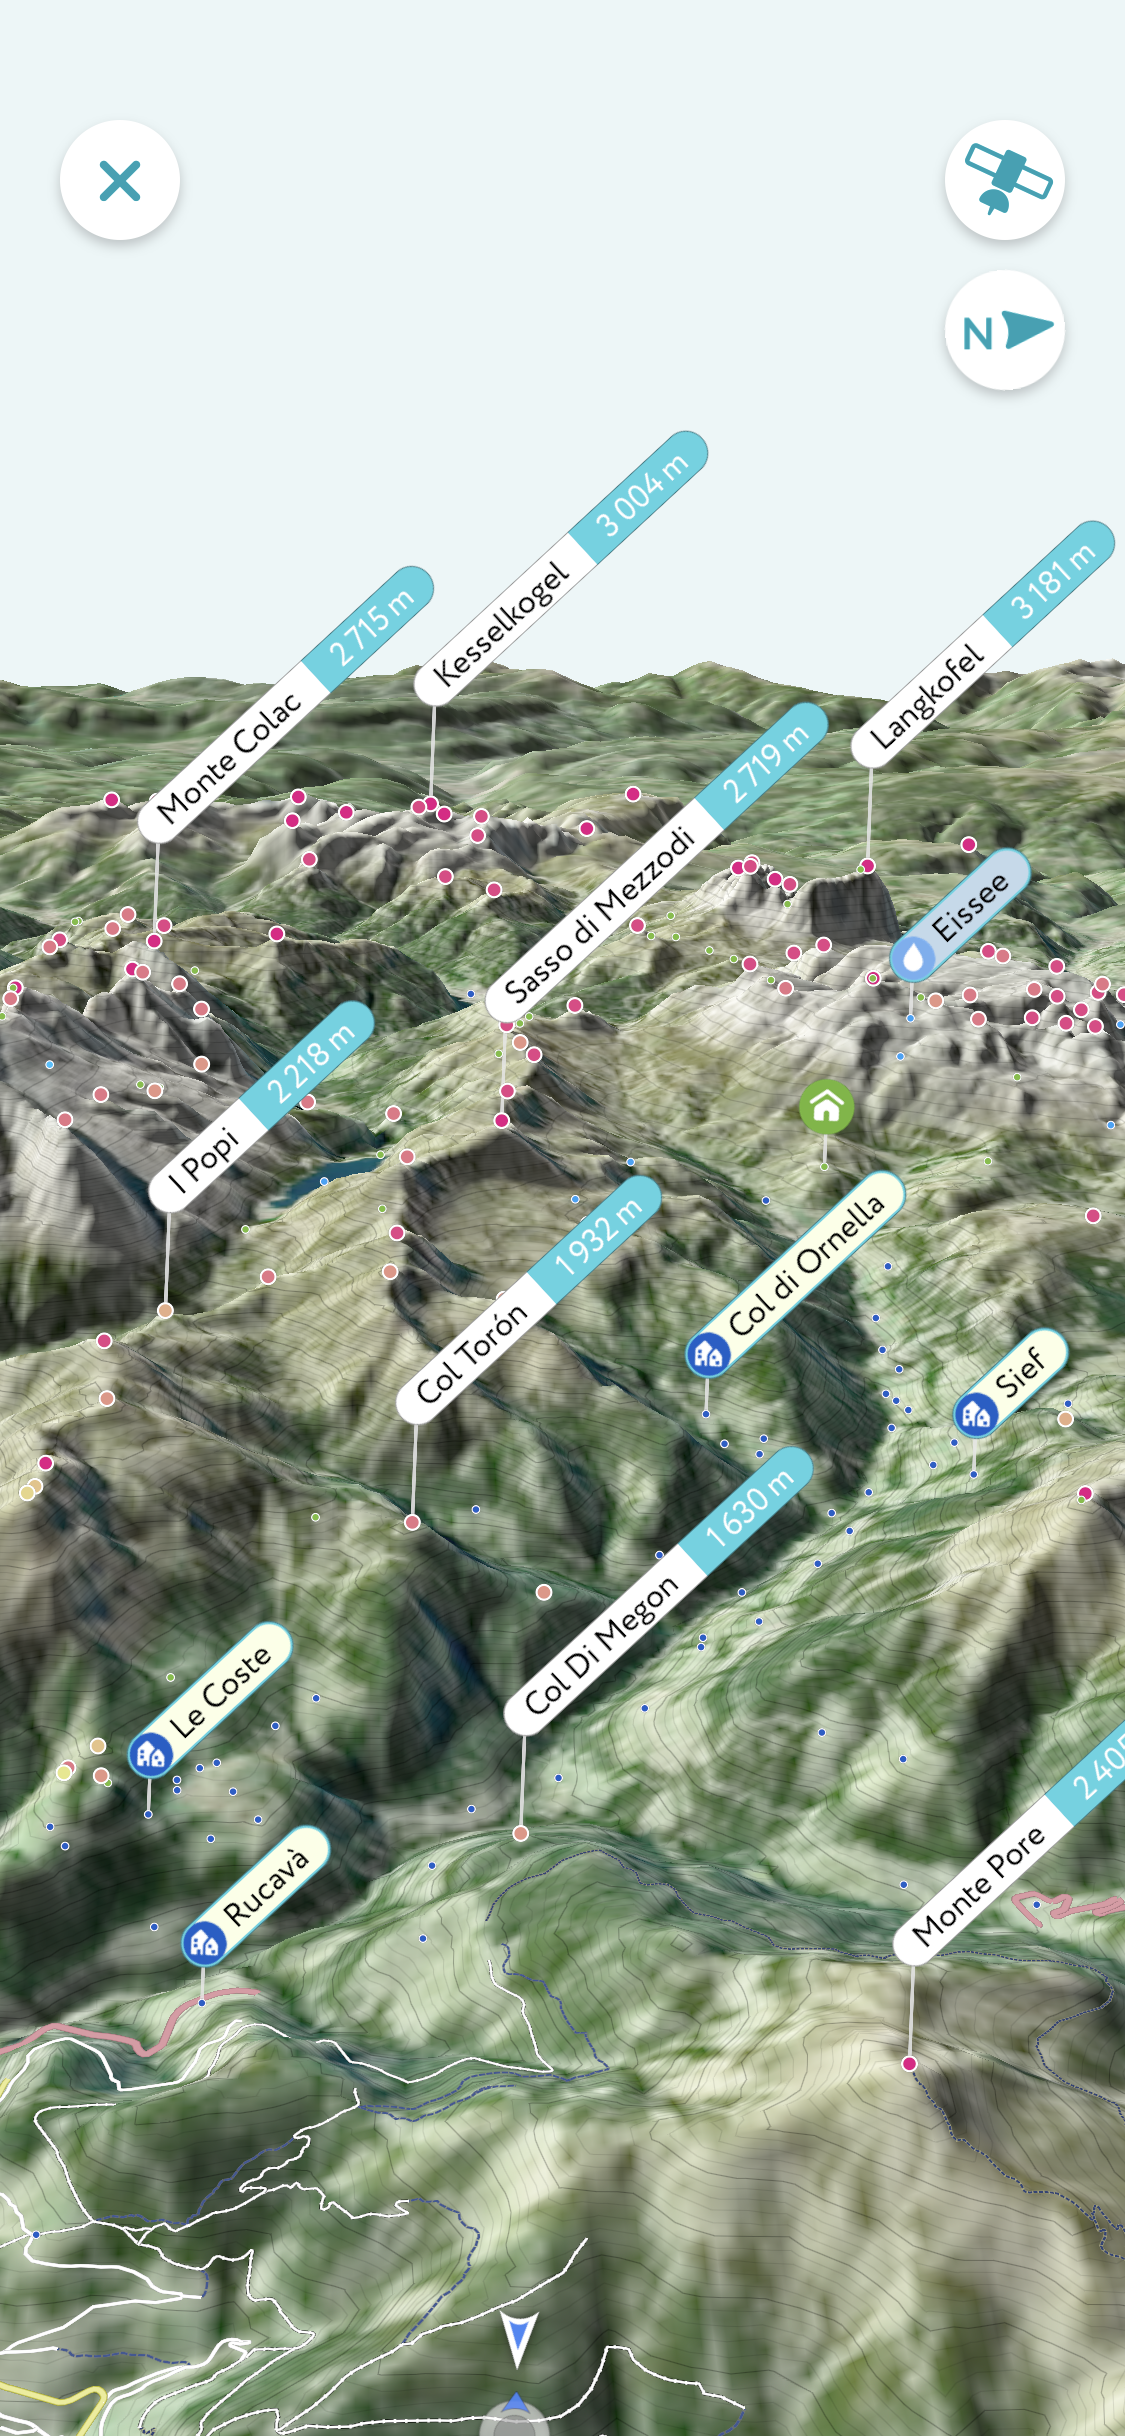 the peak visor app on android and iphone, a 3D view on the different mountains